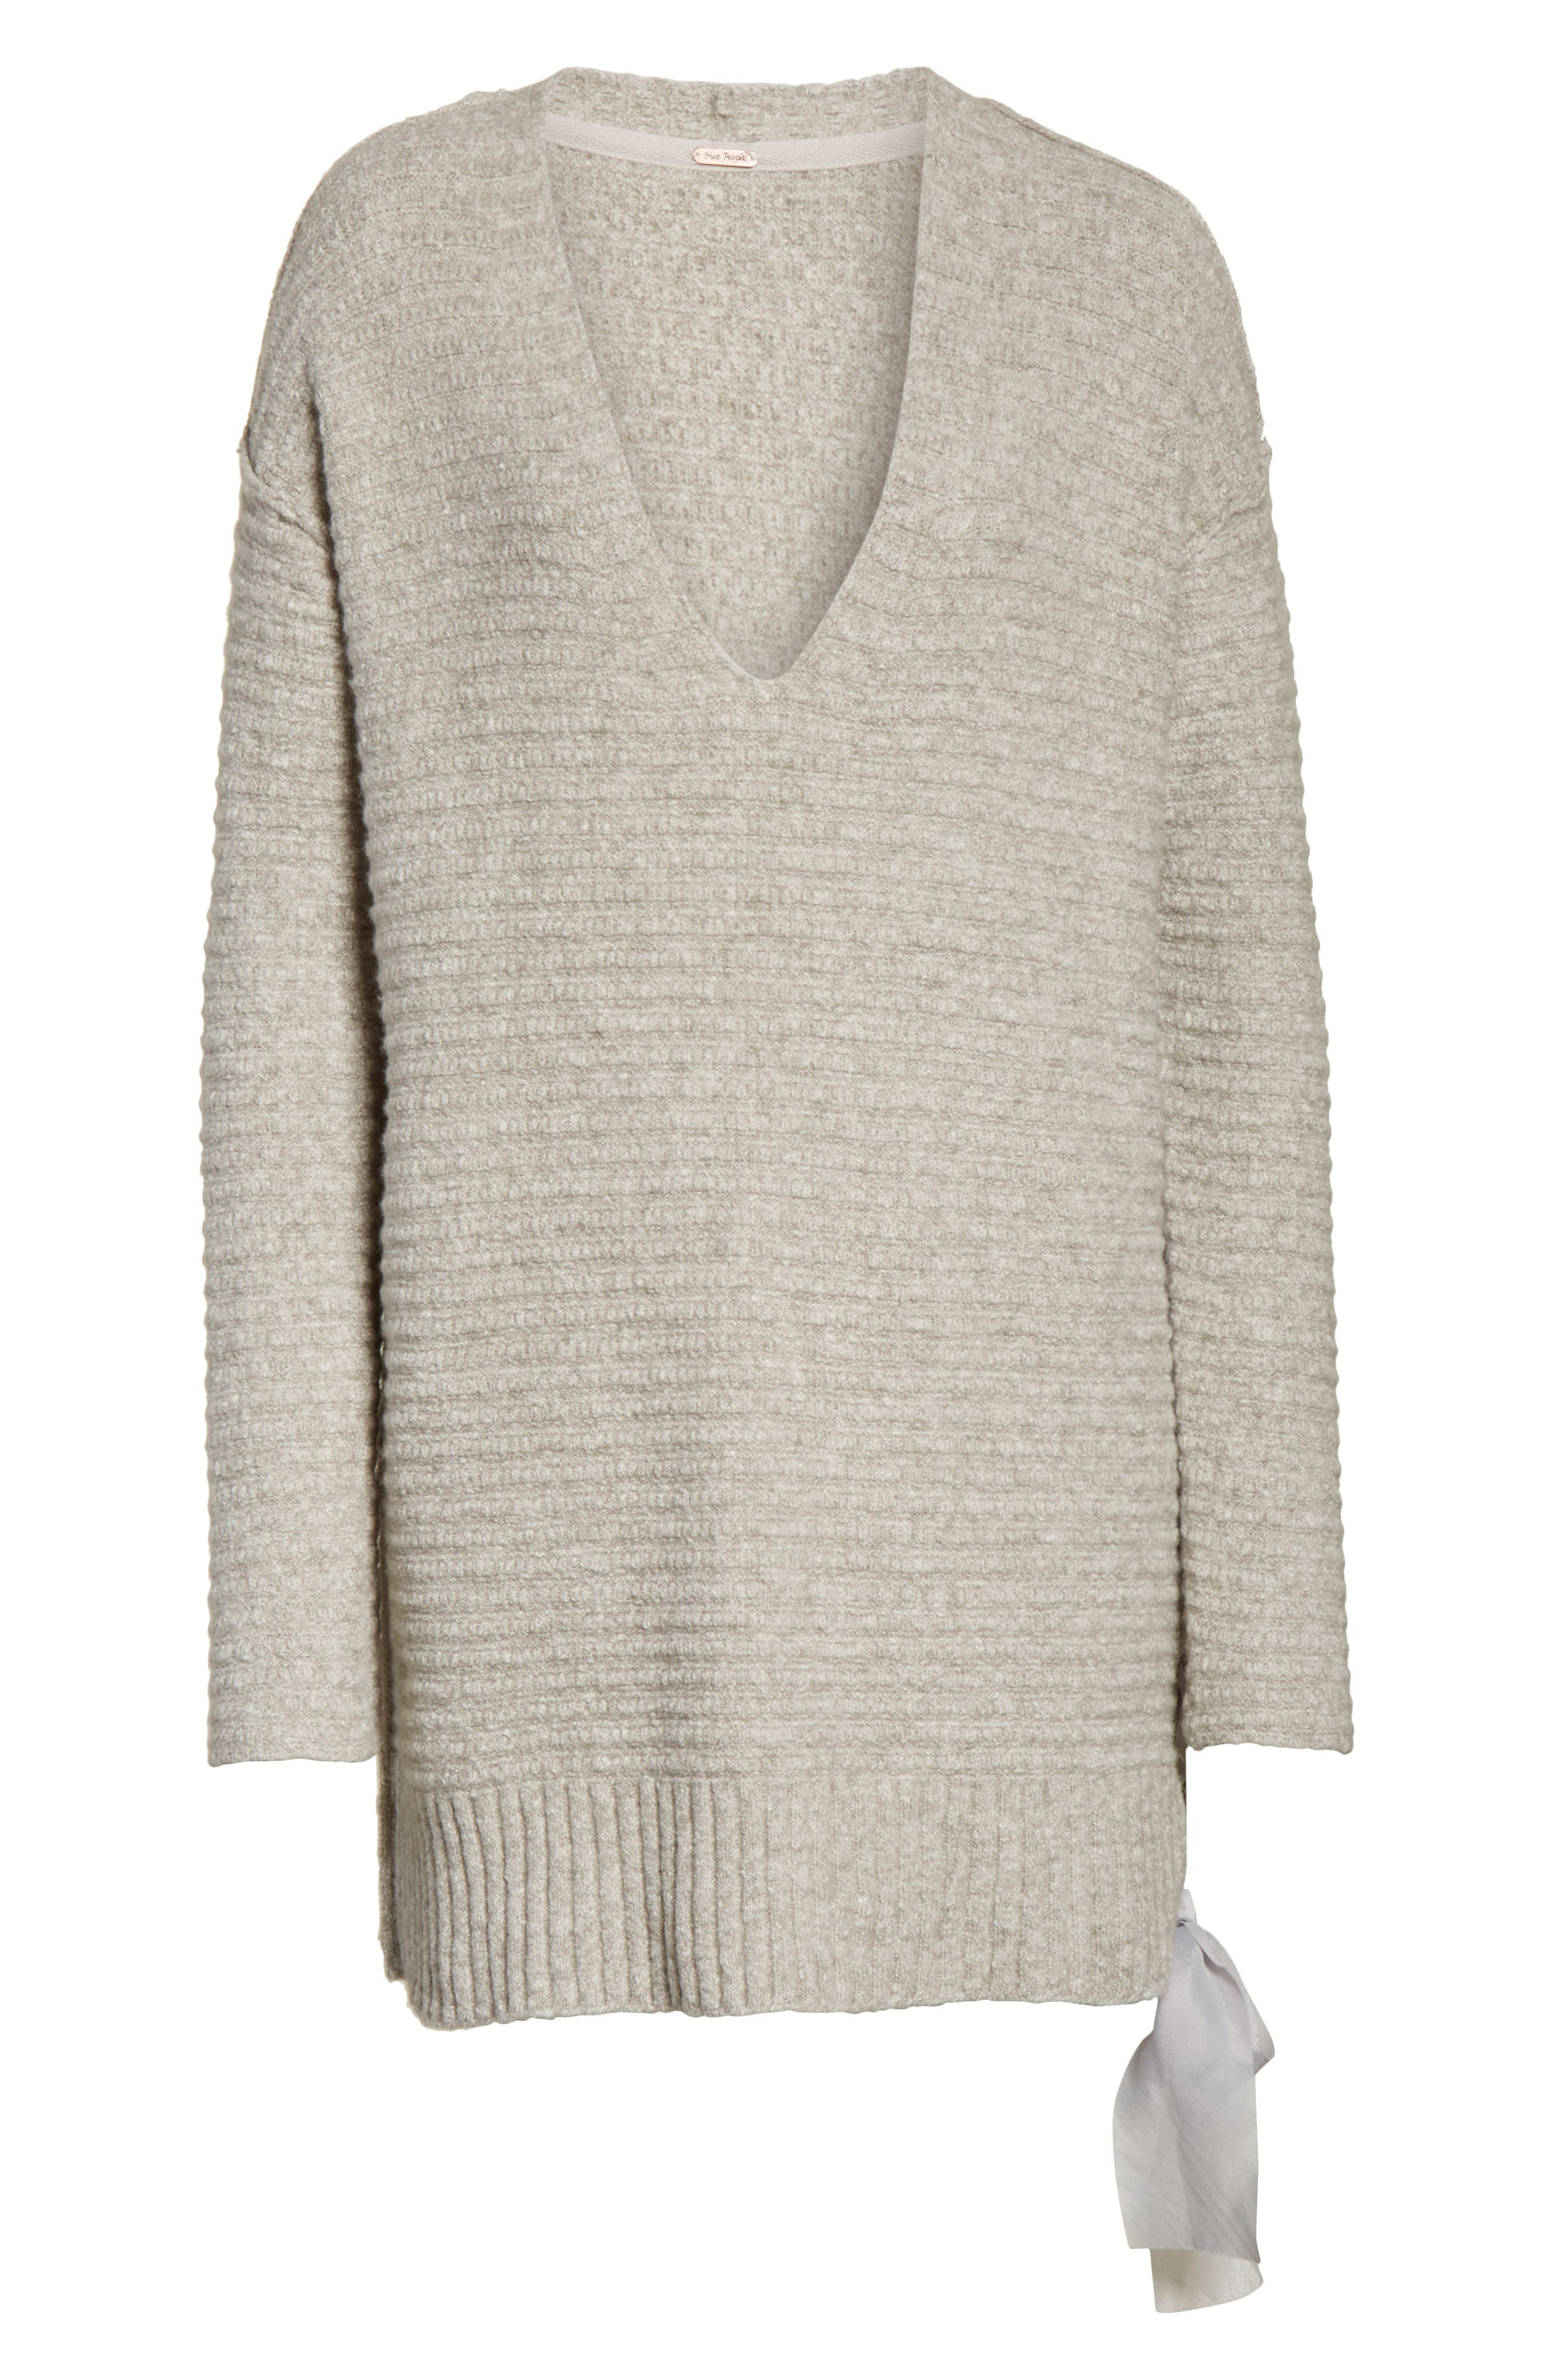 Heart It Laces Sweater,                             Alternate thumbnail 6, color,                             Grey